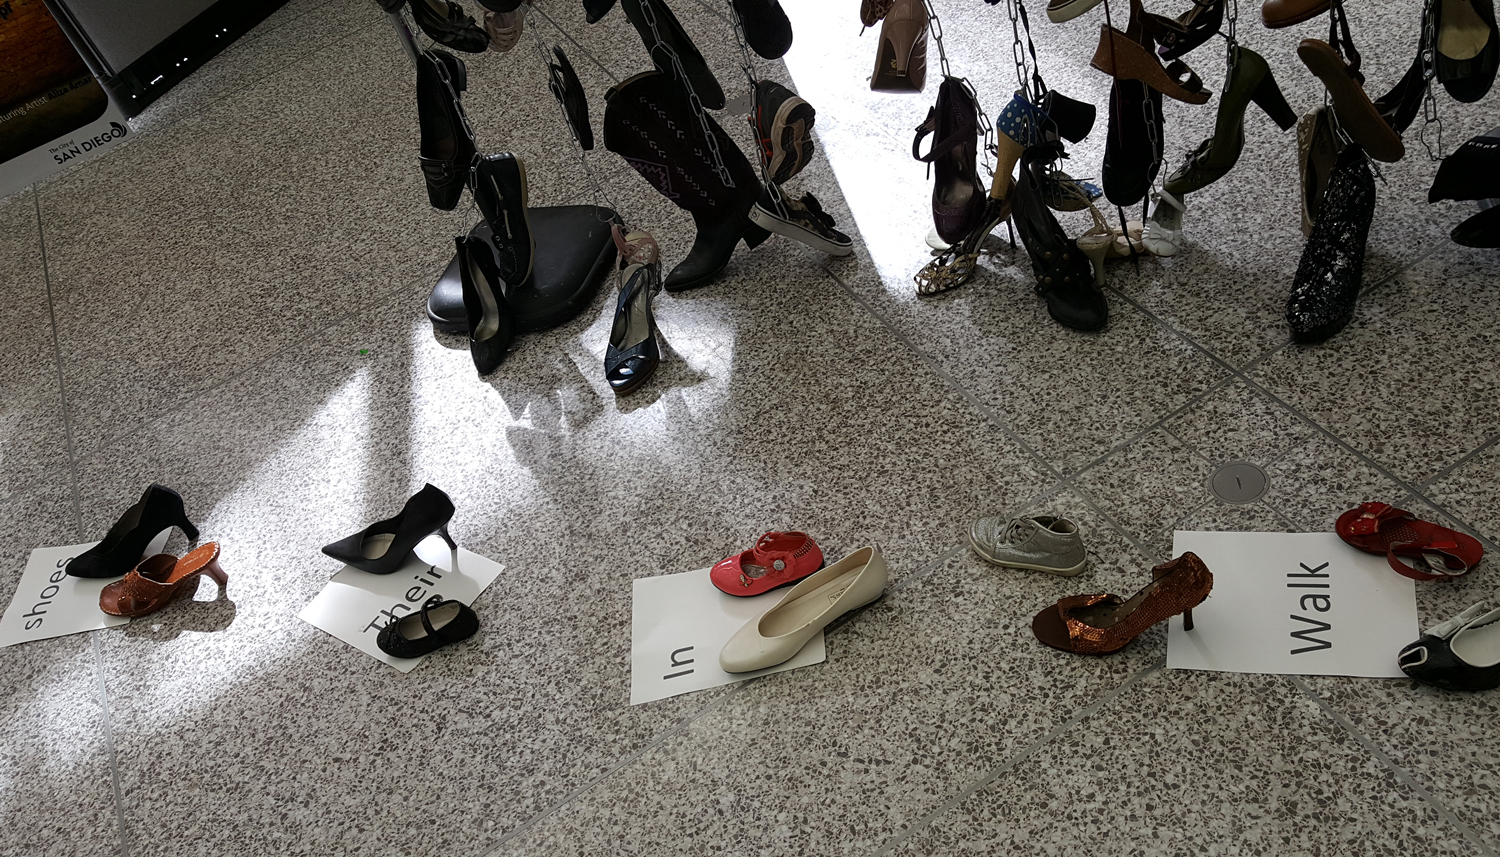 Photo of Aliza Amar's Shoe Exhibit at the Out of the Shadows display at City Hall.